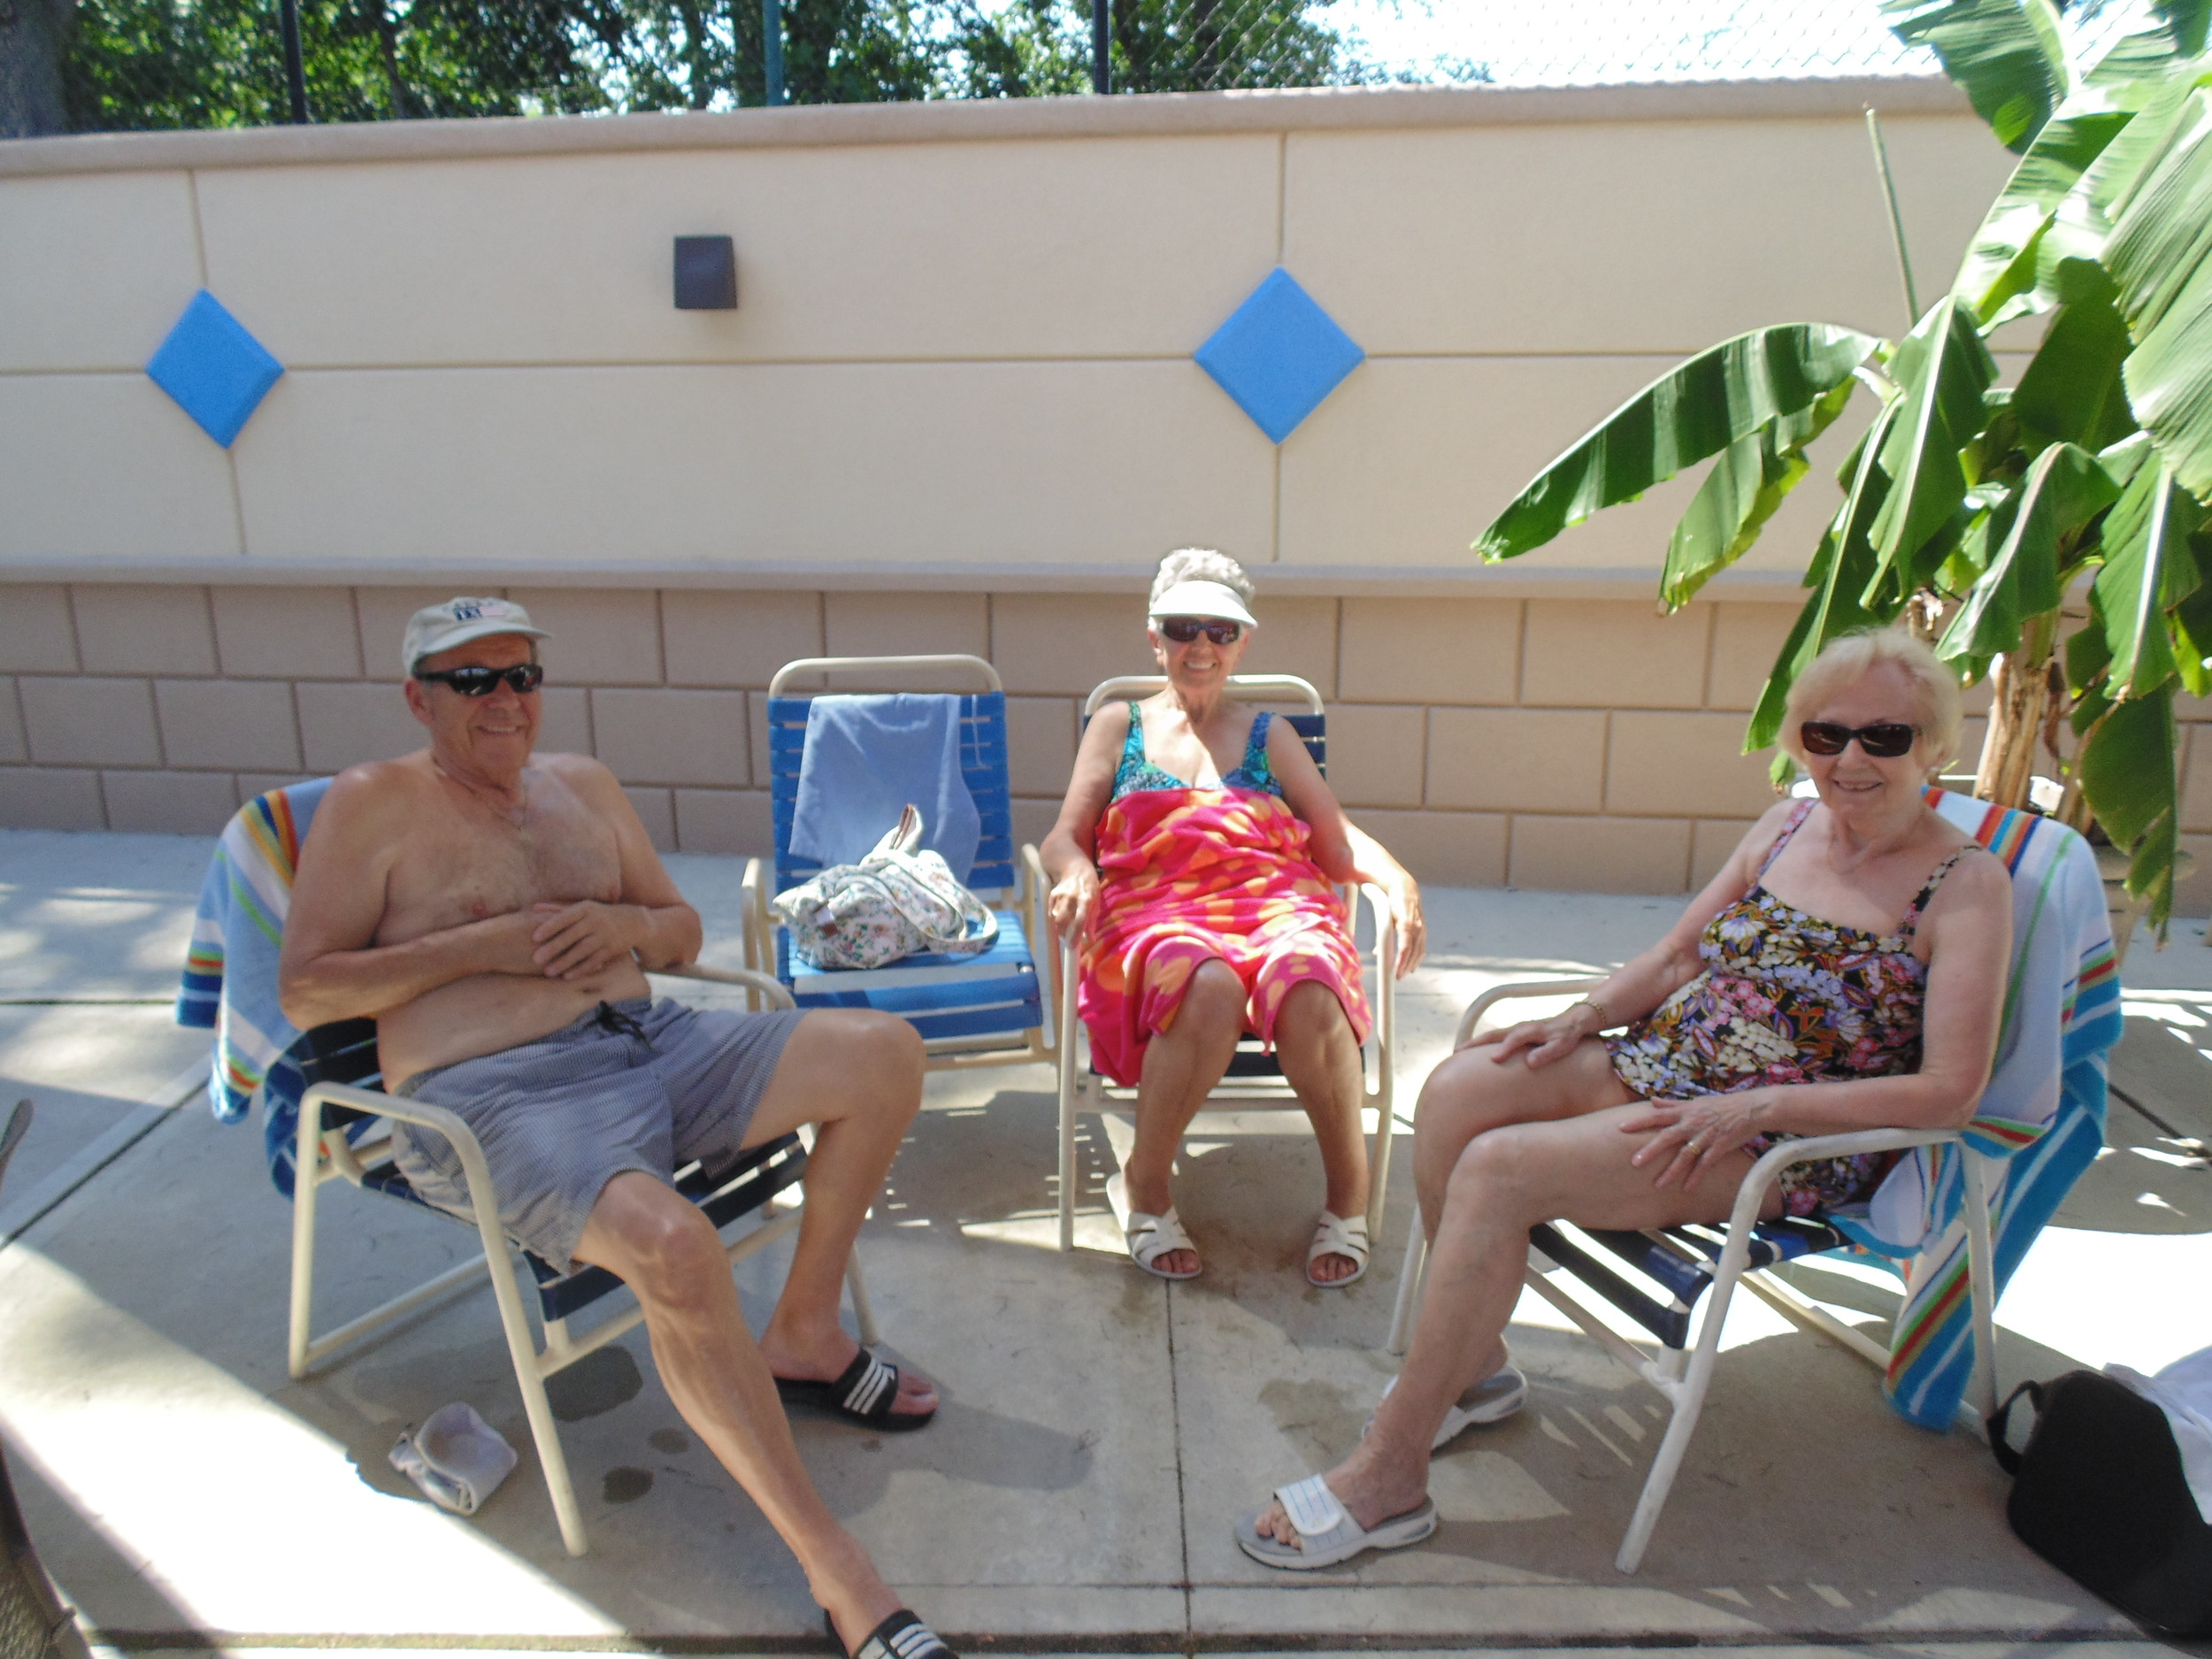 Christa, center, who declined to give her last name, and her friends Otto and Ingrid have been coming to the Valley Stream pool since the 1960s.